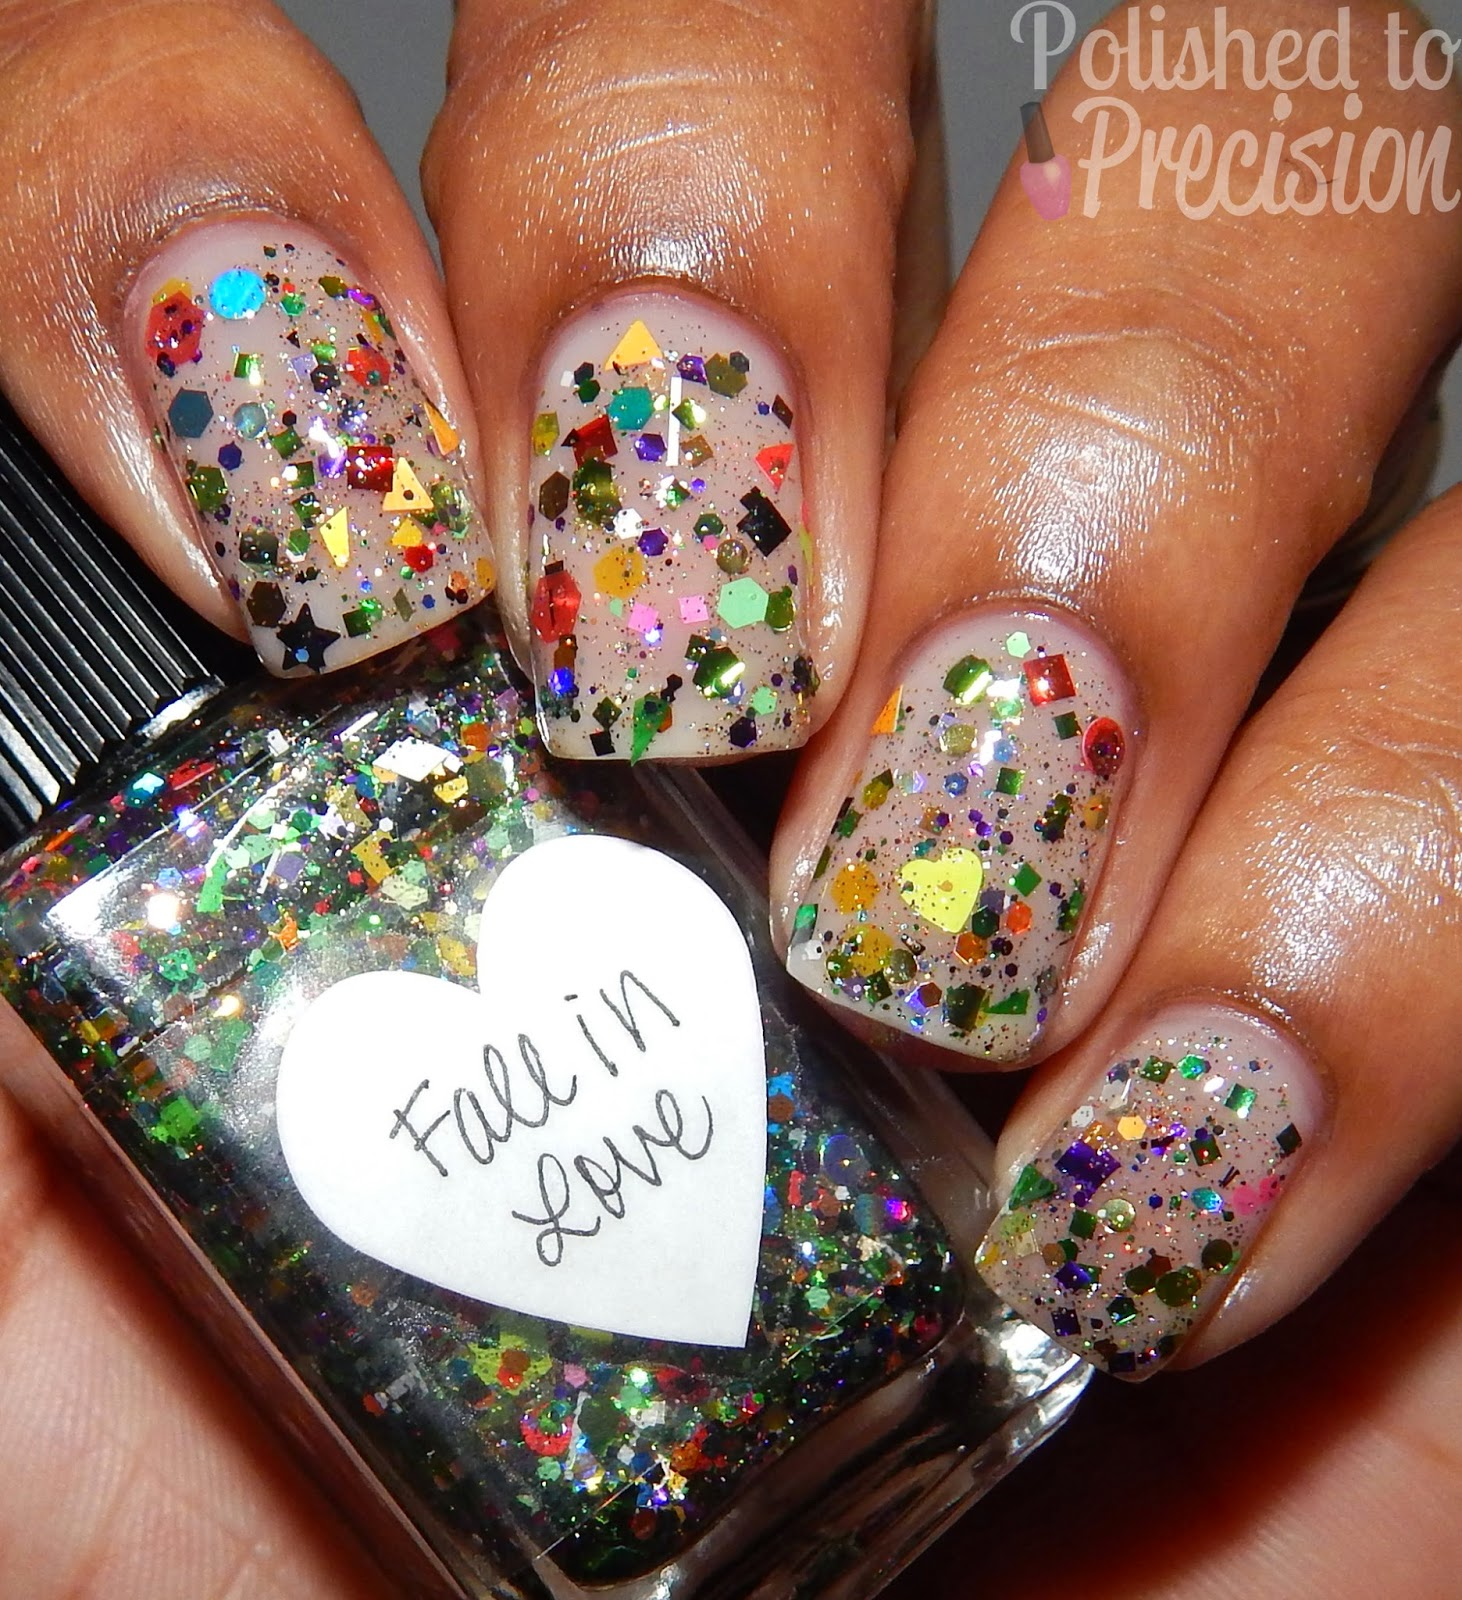 Polished to Precision: Lynnderella- Fall in Love & Jammy Blue Review